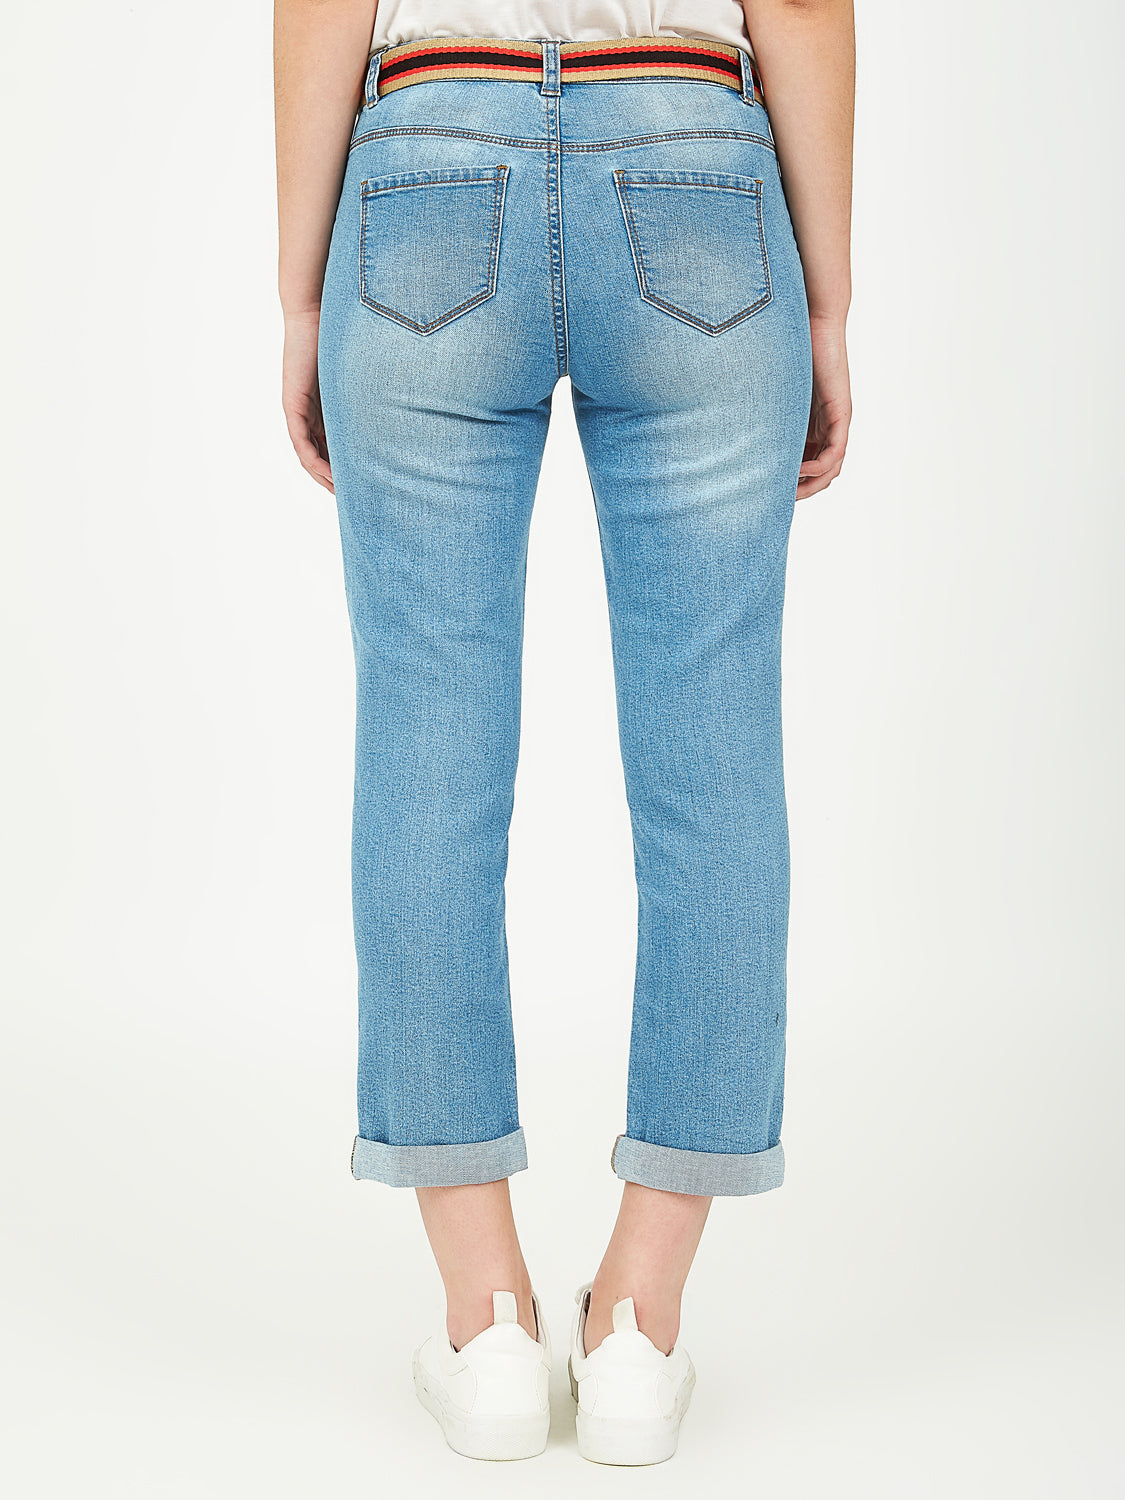 Belted Denim Capri Pants